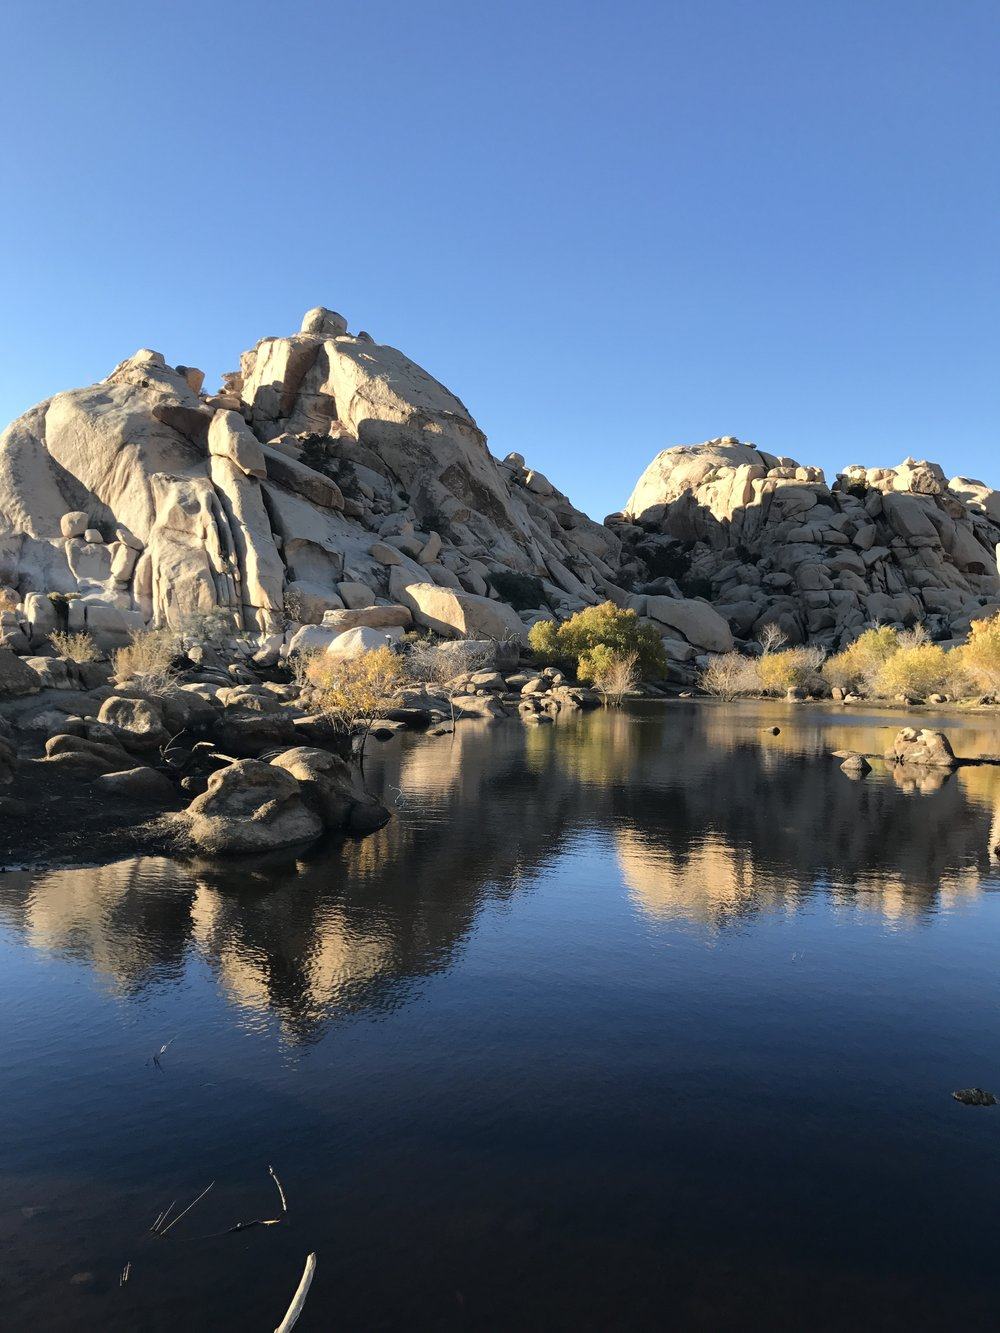 An oasis at Joshua Tree National Park